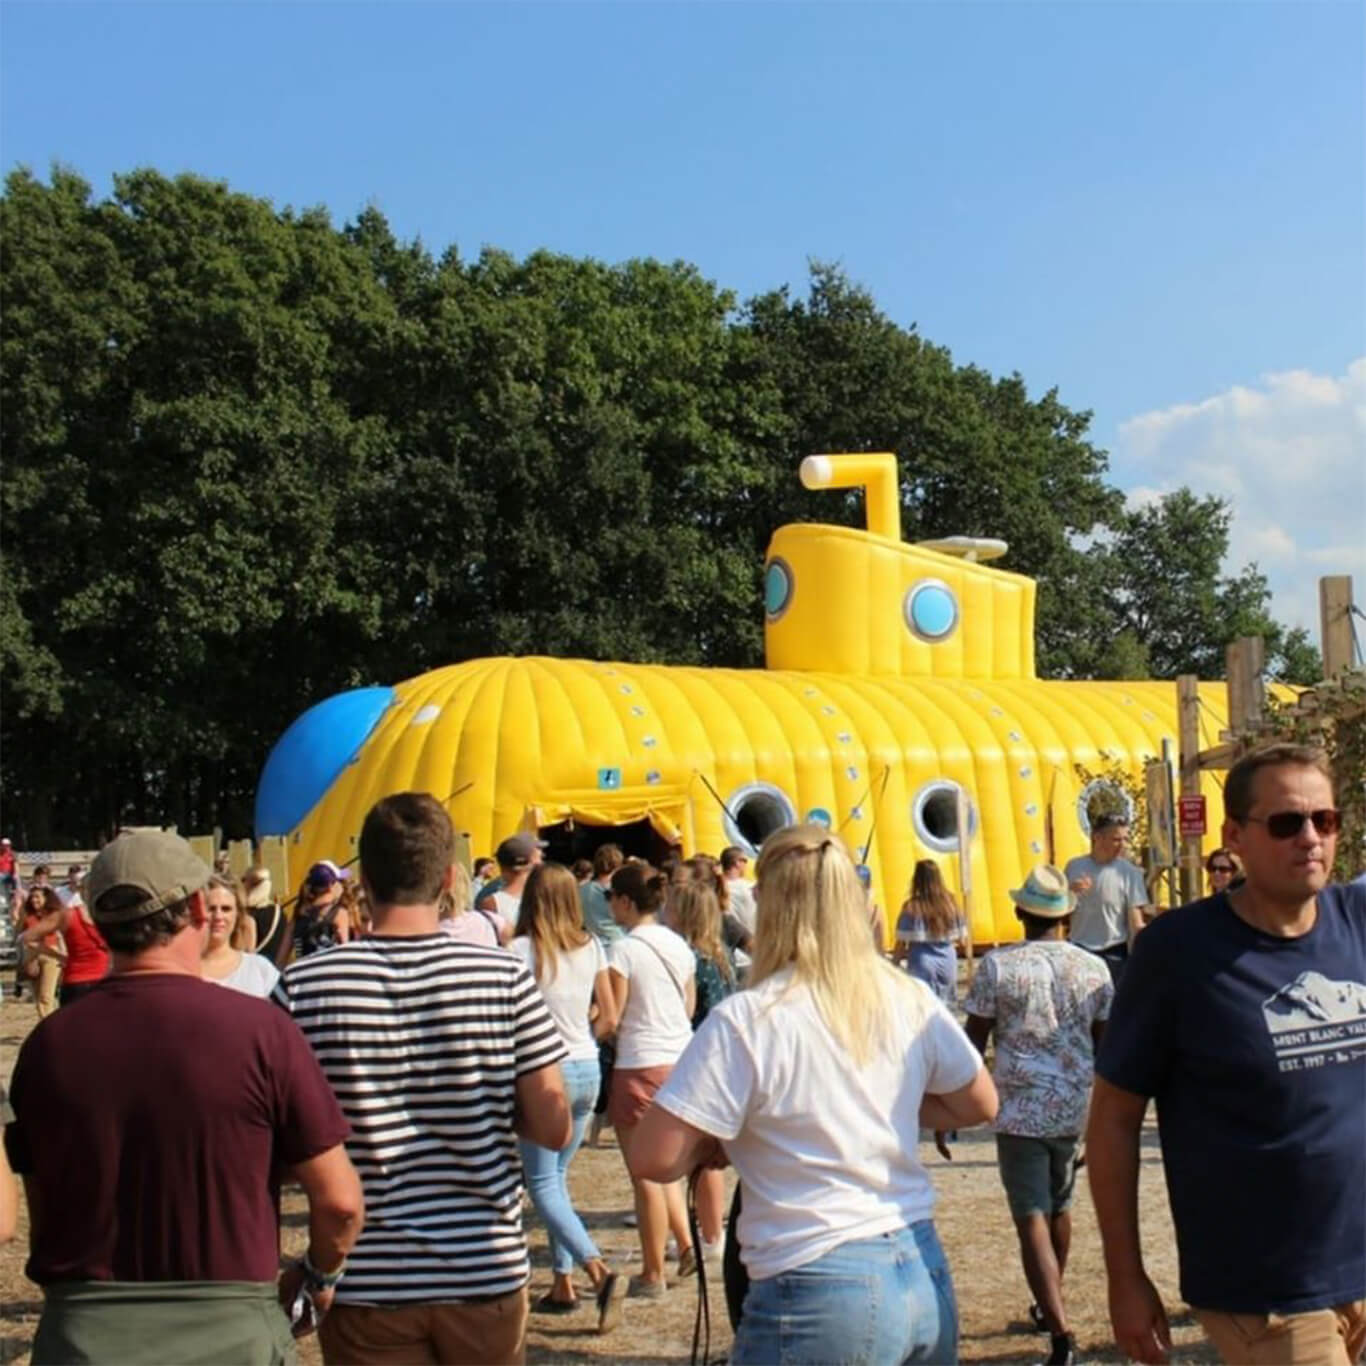 buurtfeest Perfecte oplossing yellow submarine